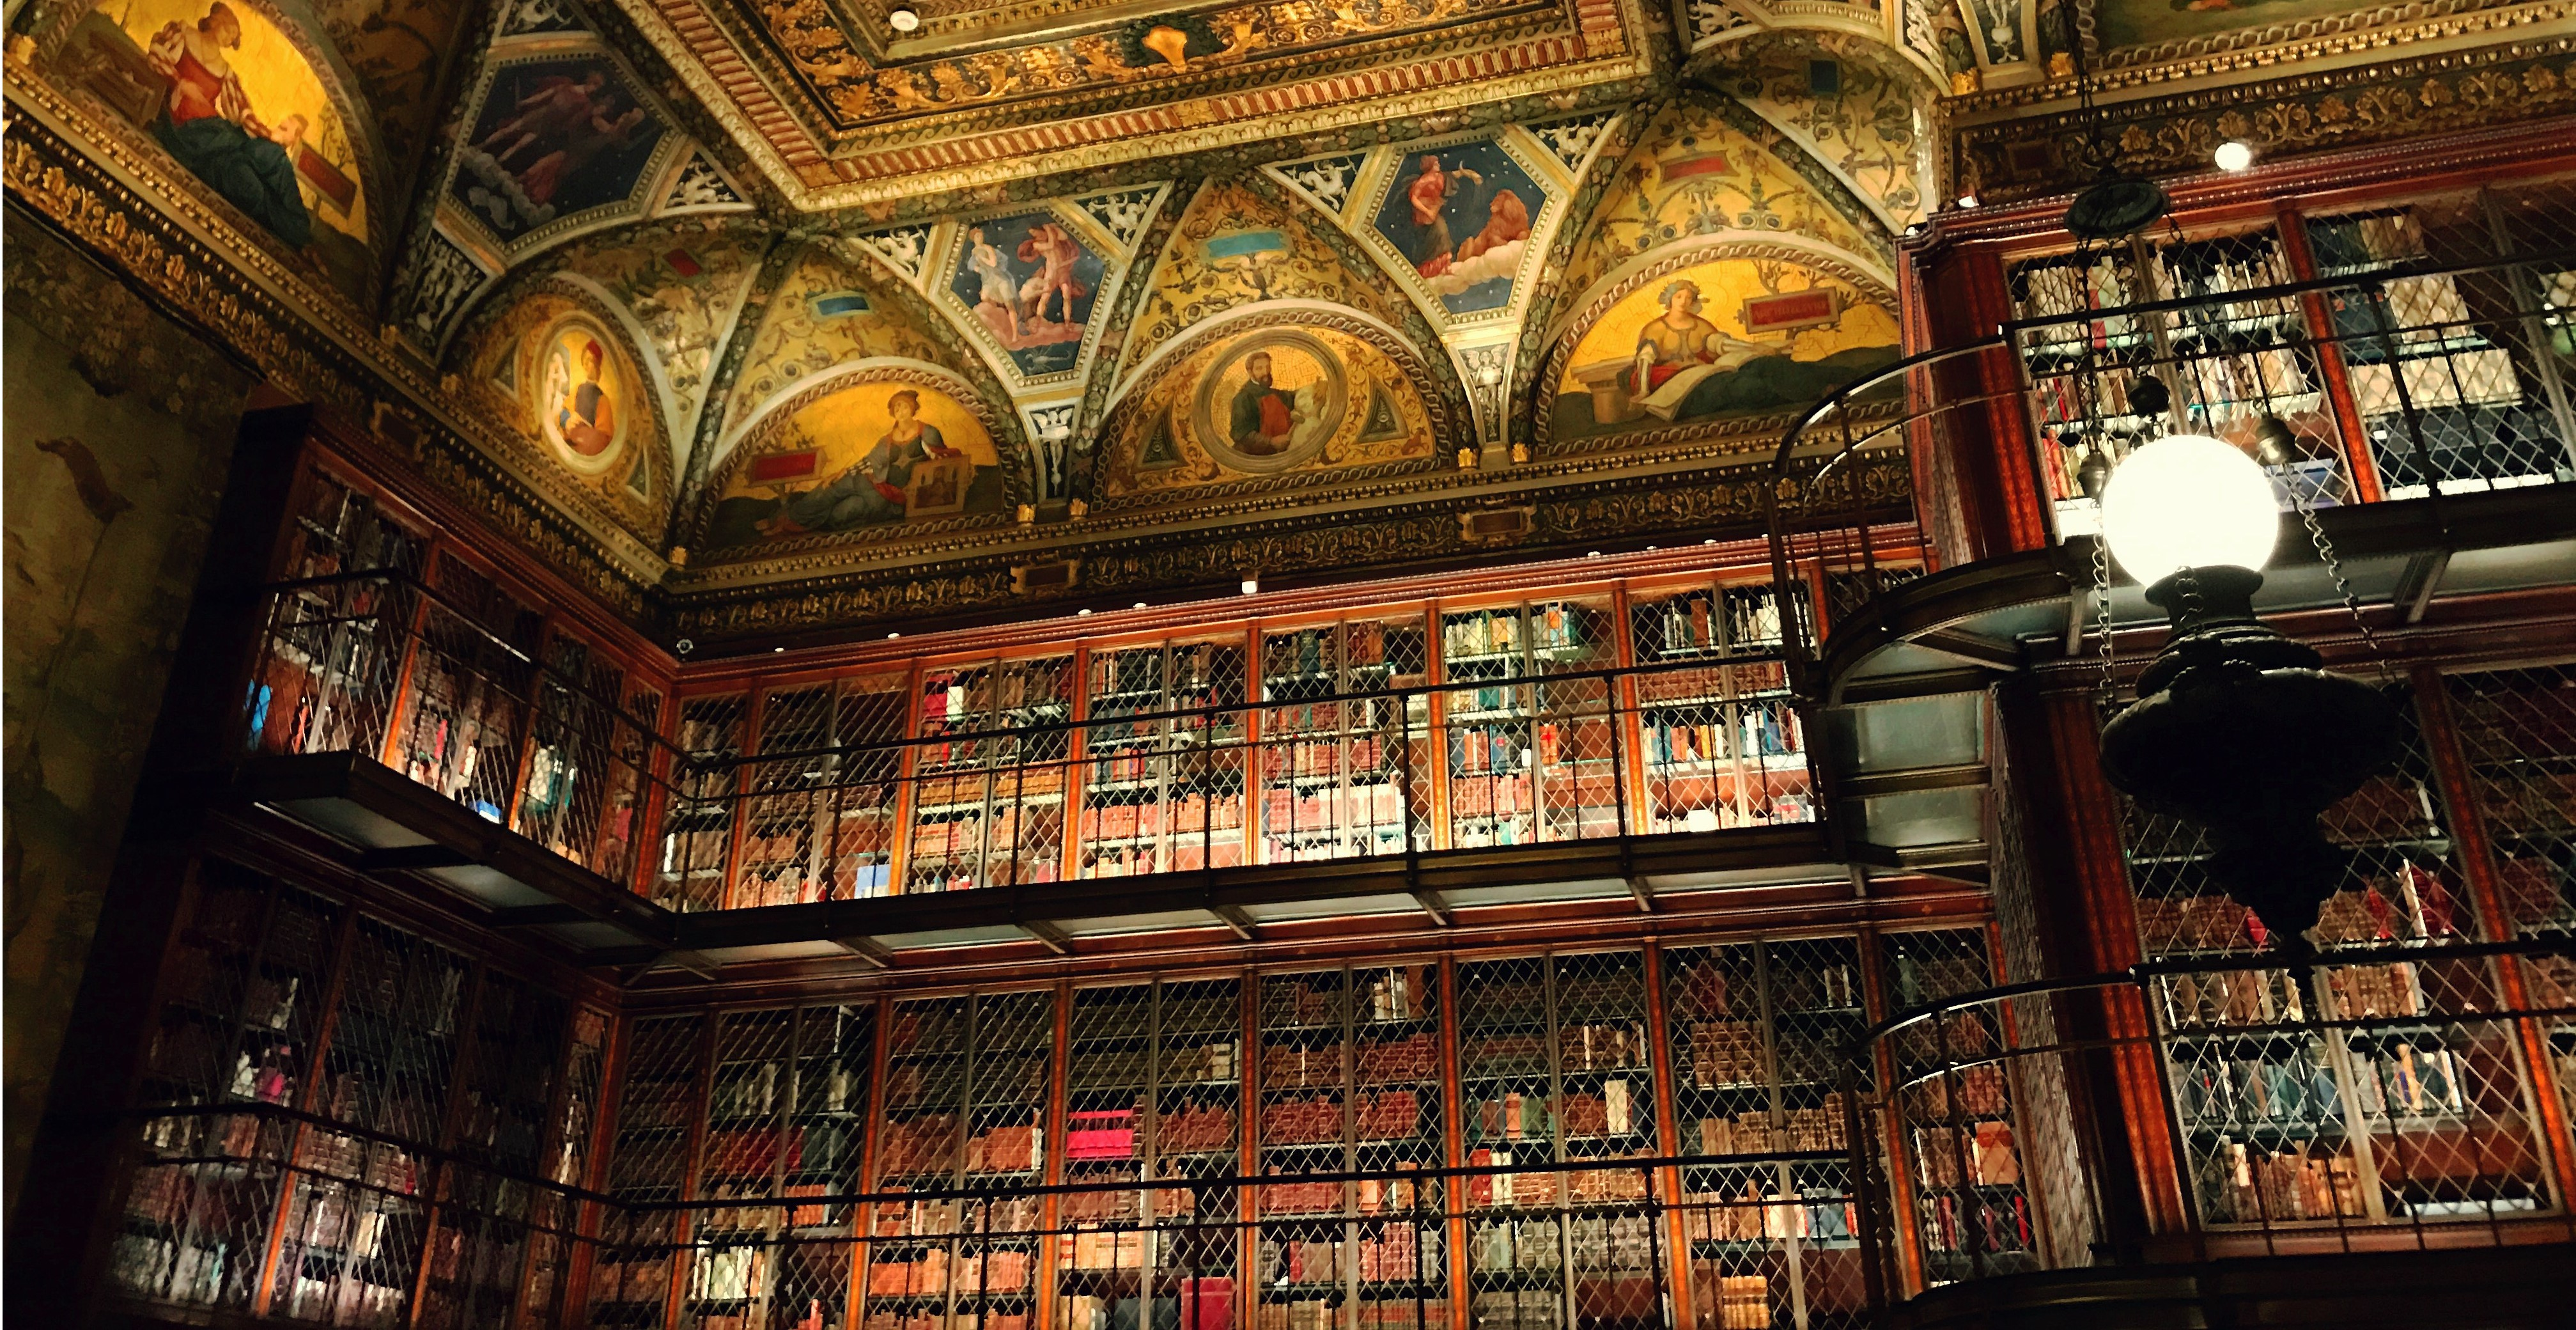 Morgan library ceiling